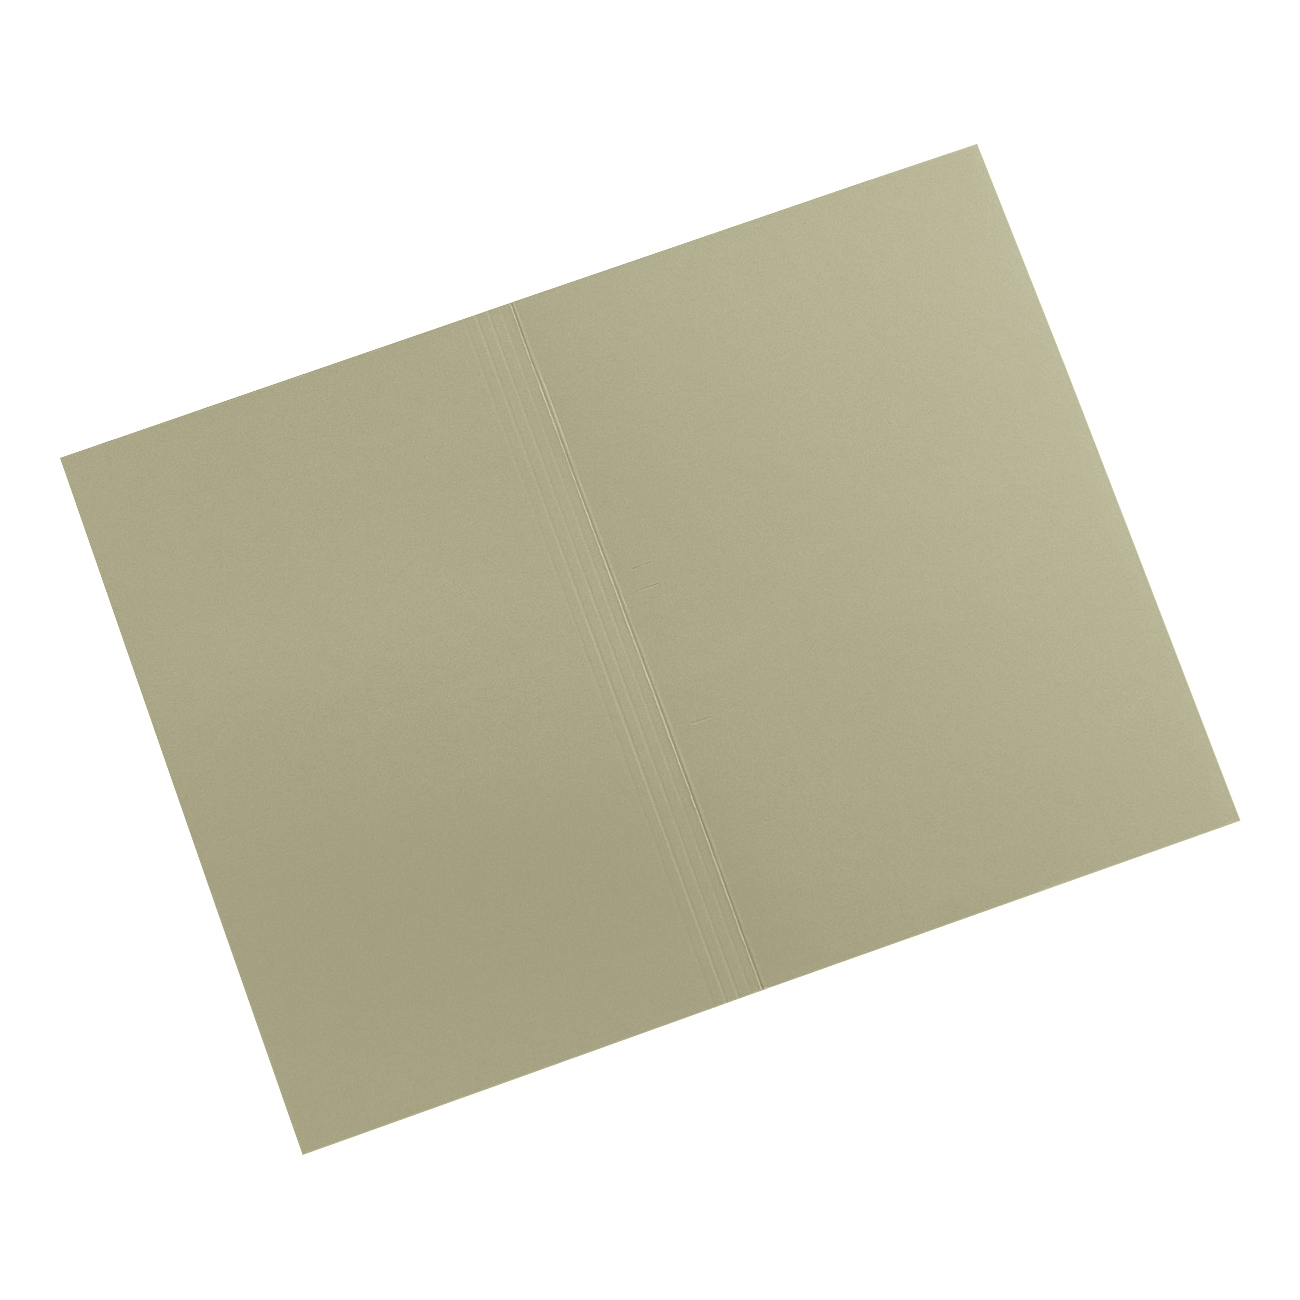 Square Cut Folders 5 Star Elite Square Cut Folders 315gsm Heavyweight Manilla Foolscap Green Pack 100